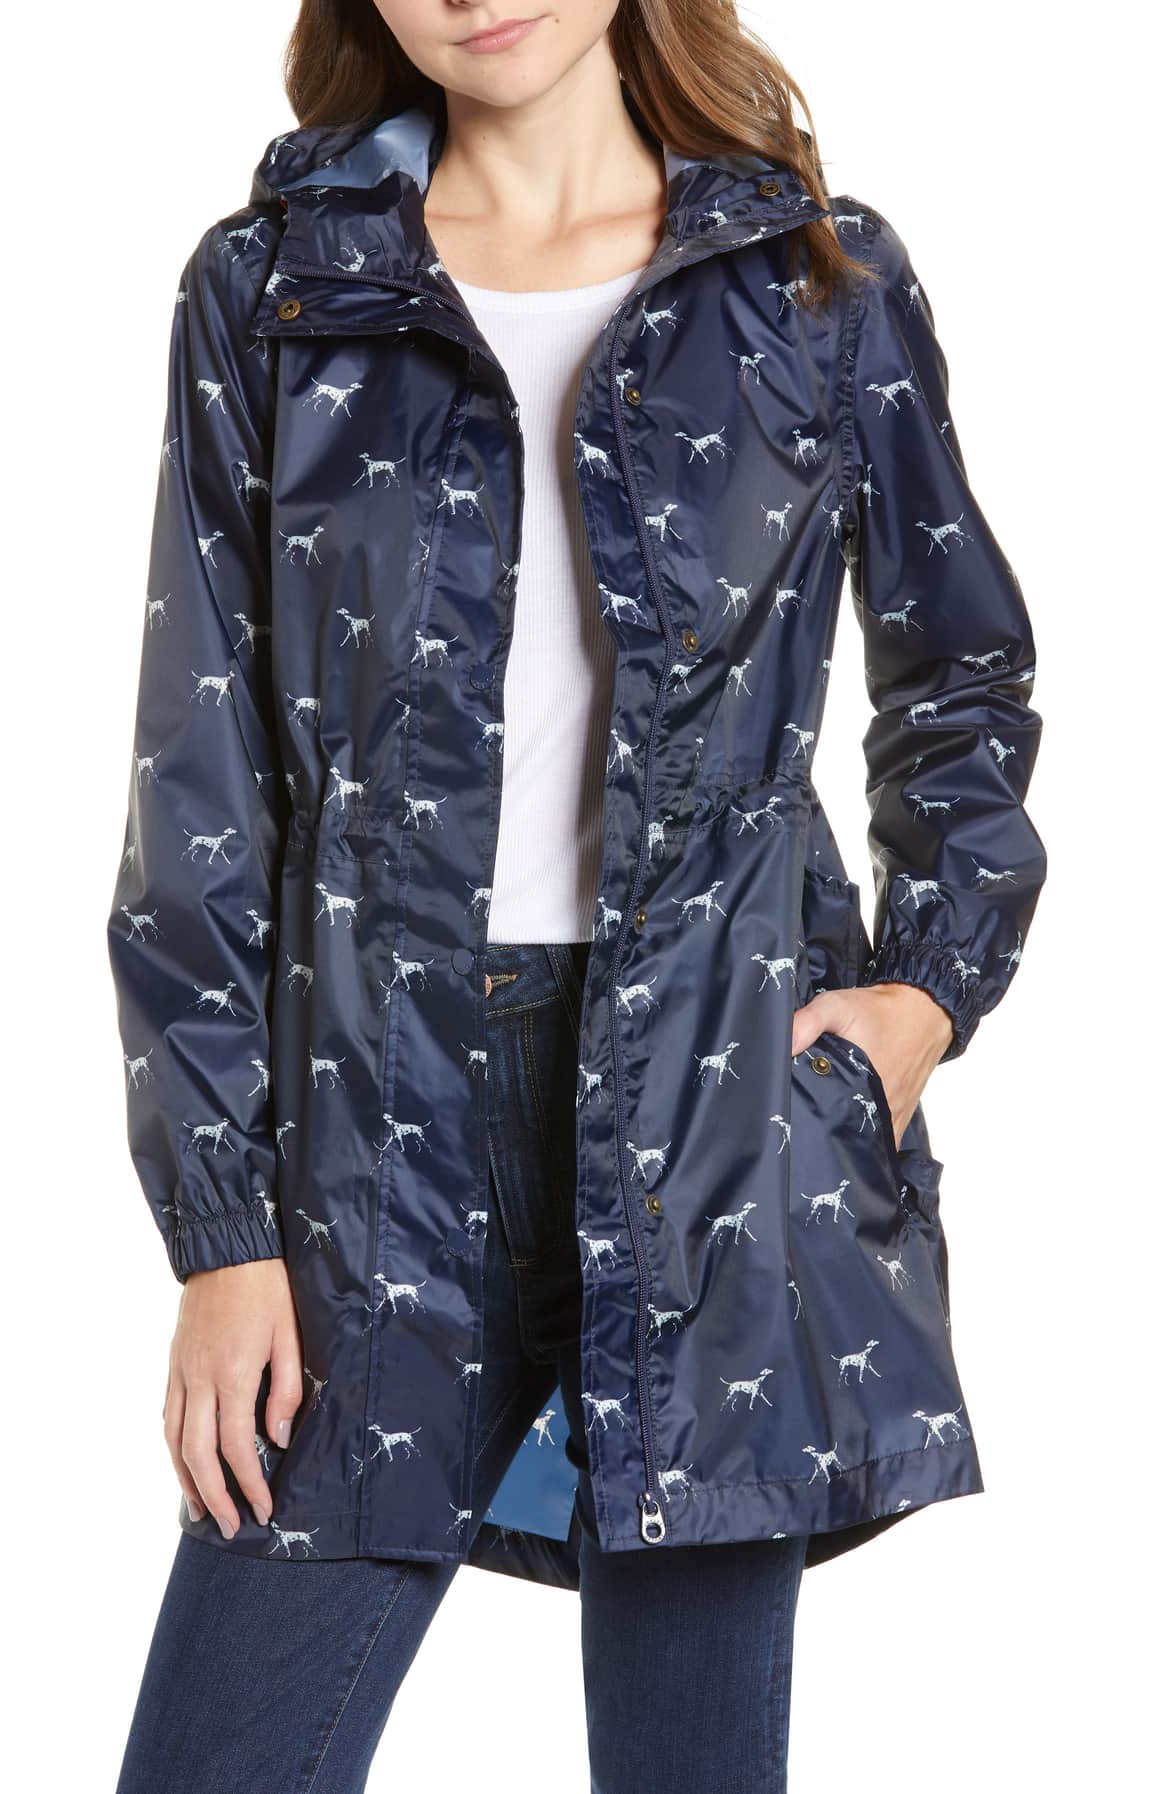 french navy dalmation joule hooded raincoat